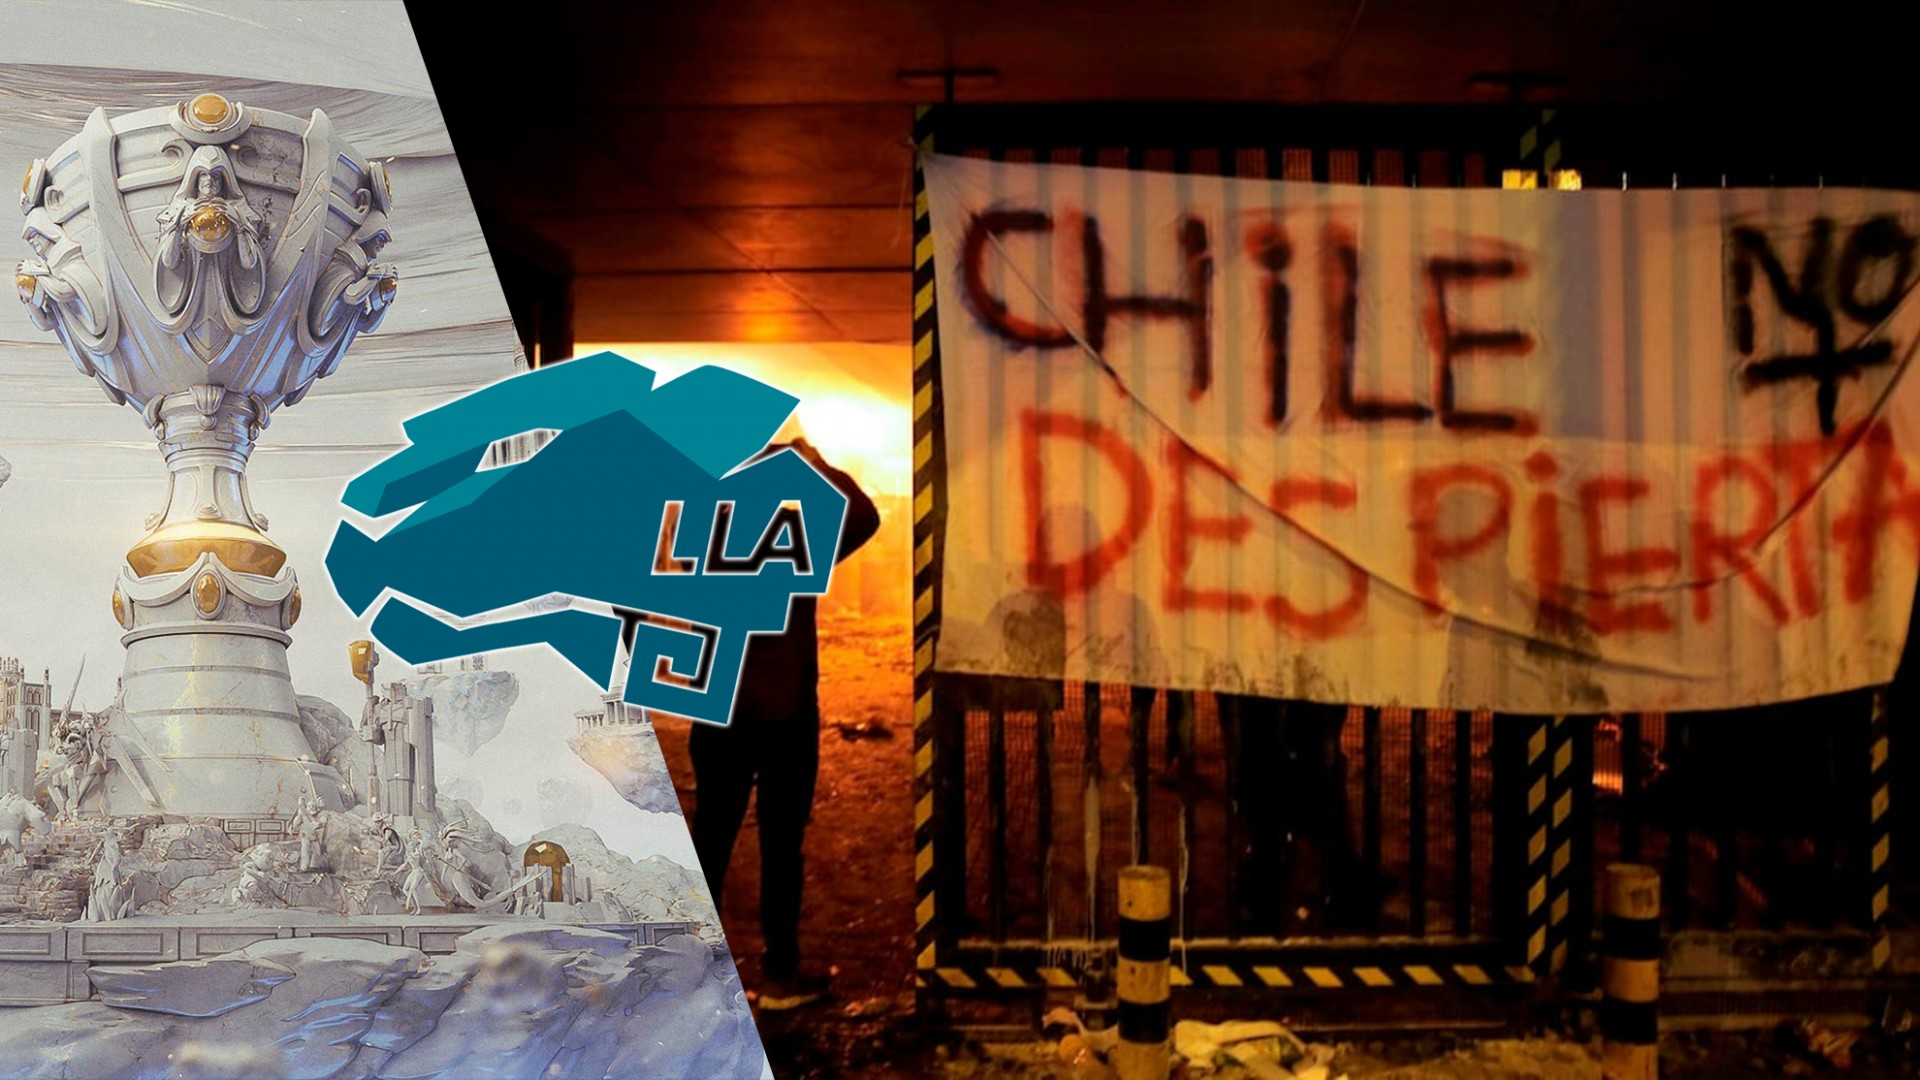 League Of Legends Lol Esports Latinoamerica Cancels Worlds 2019 Broadcast Over Protests In Chile Inven Global